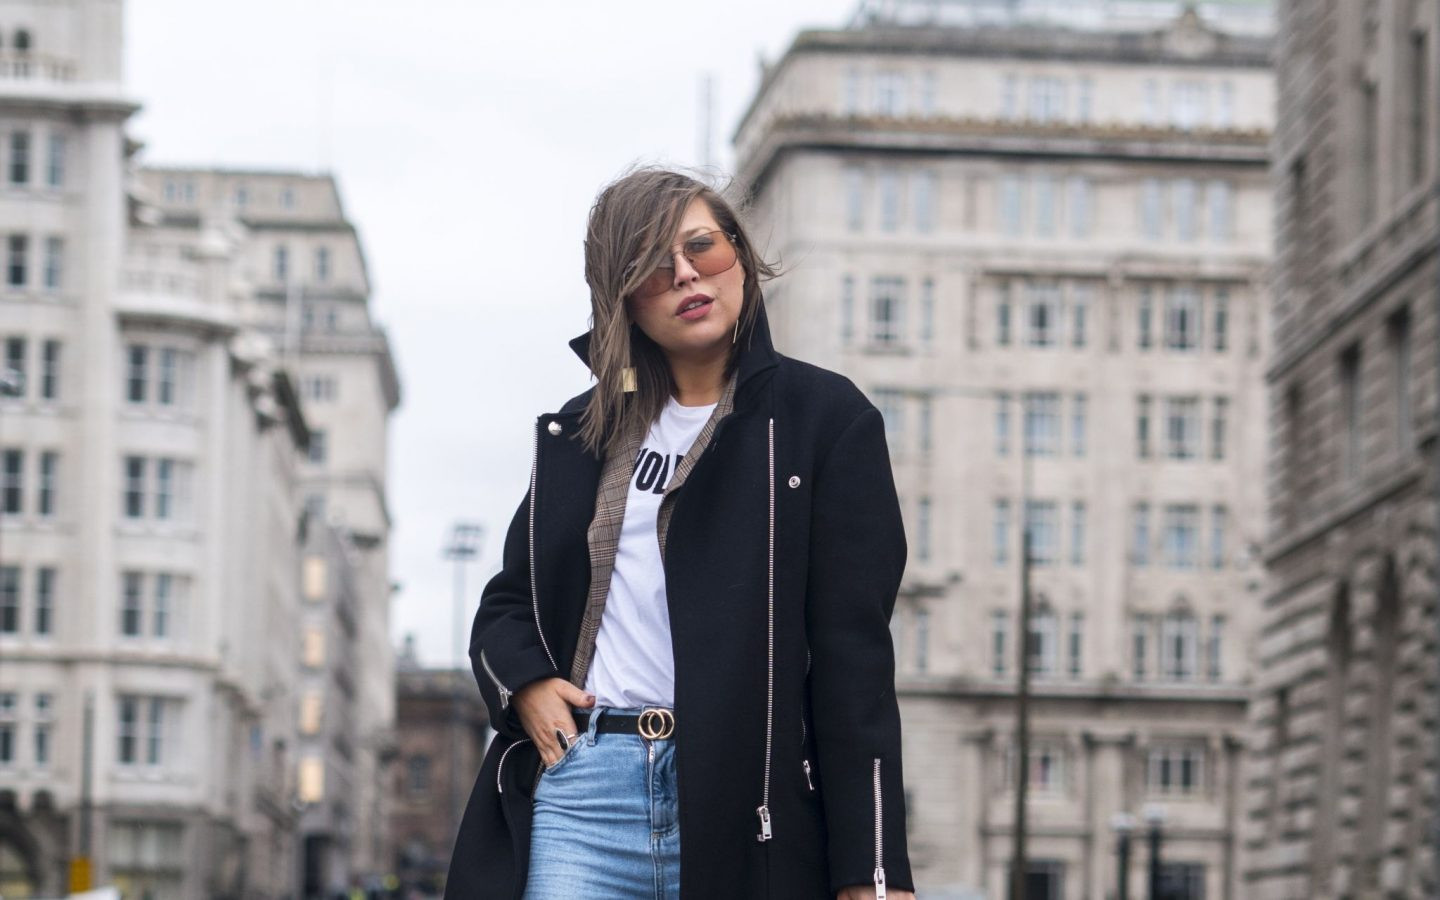 Manchester Fashion, Beauty And Lifestyle Blogger